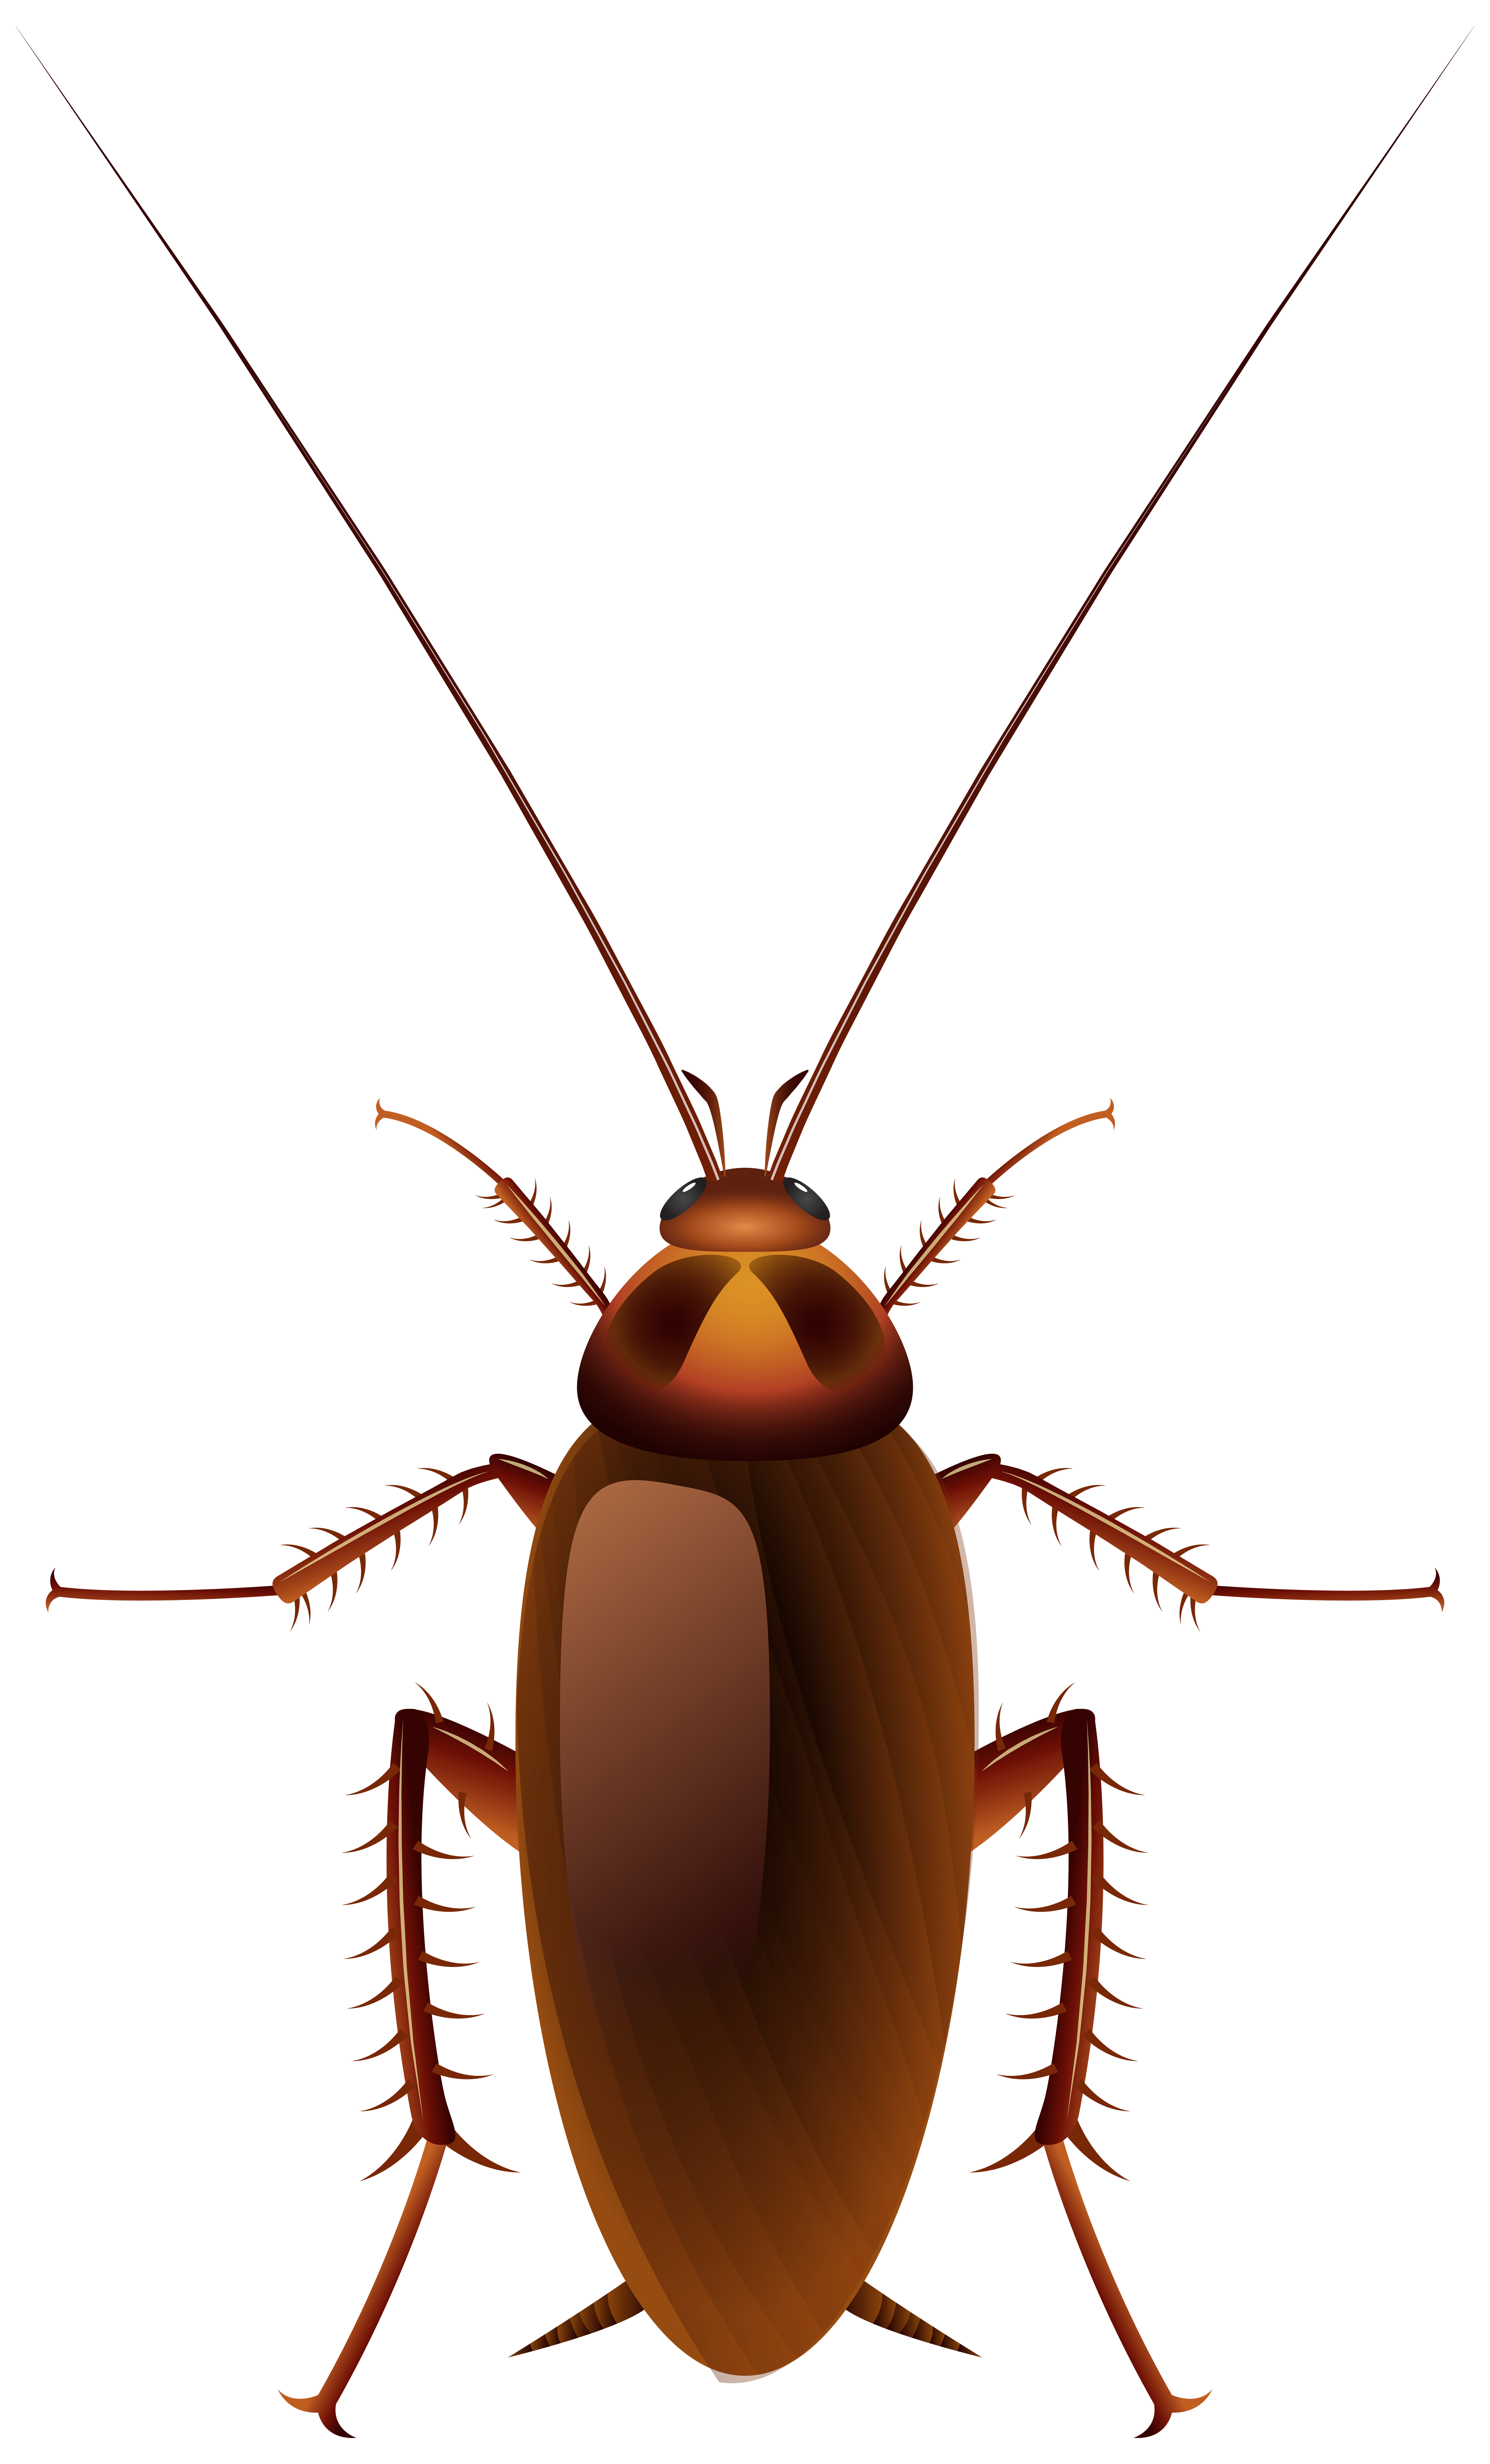 Dead ant silhouette png. Cockroach clipart at getdrawings